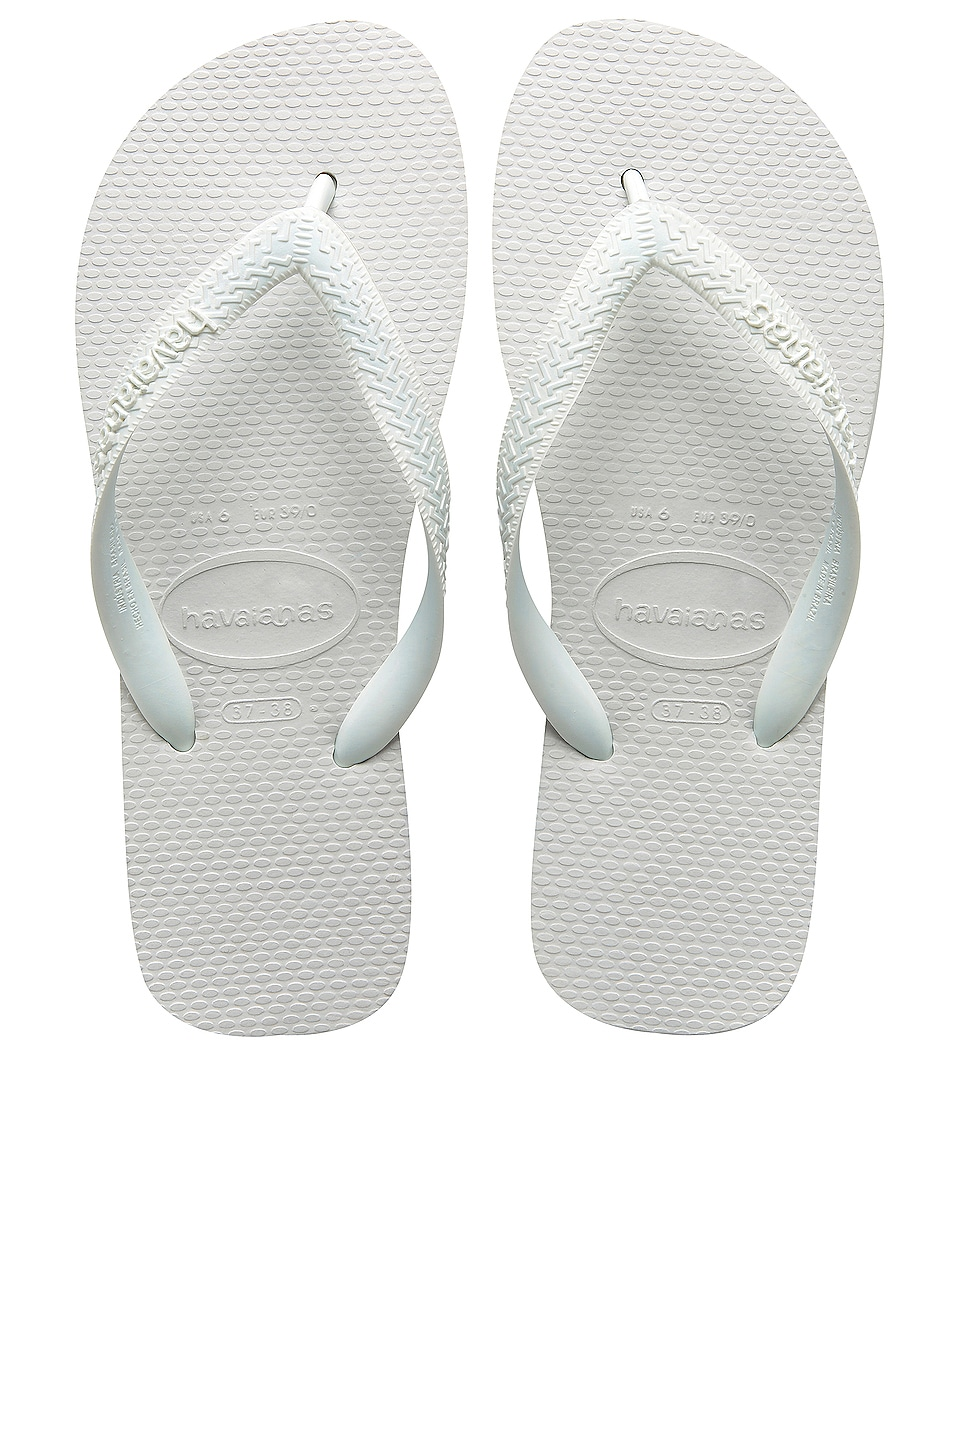 Havaianas Top Sandal in White